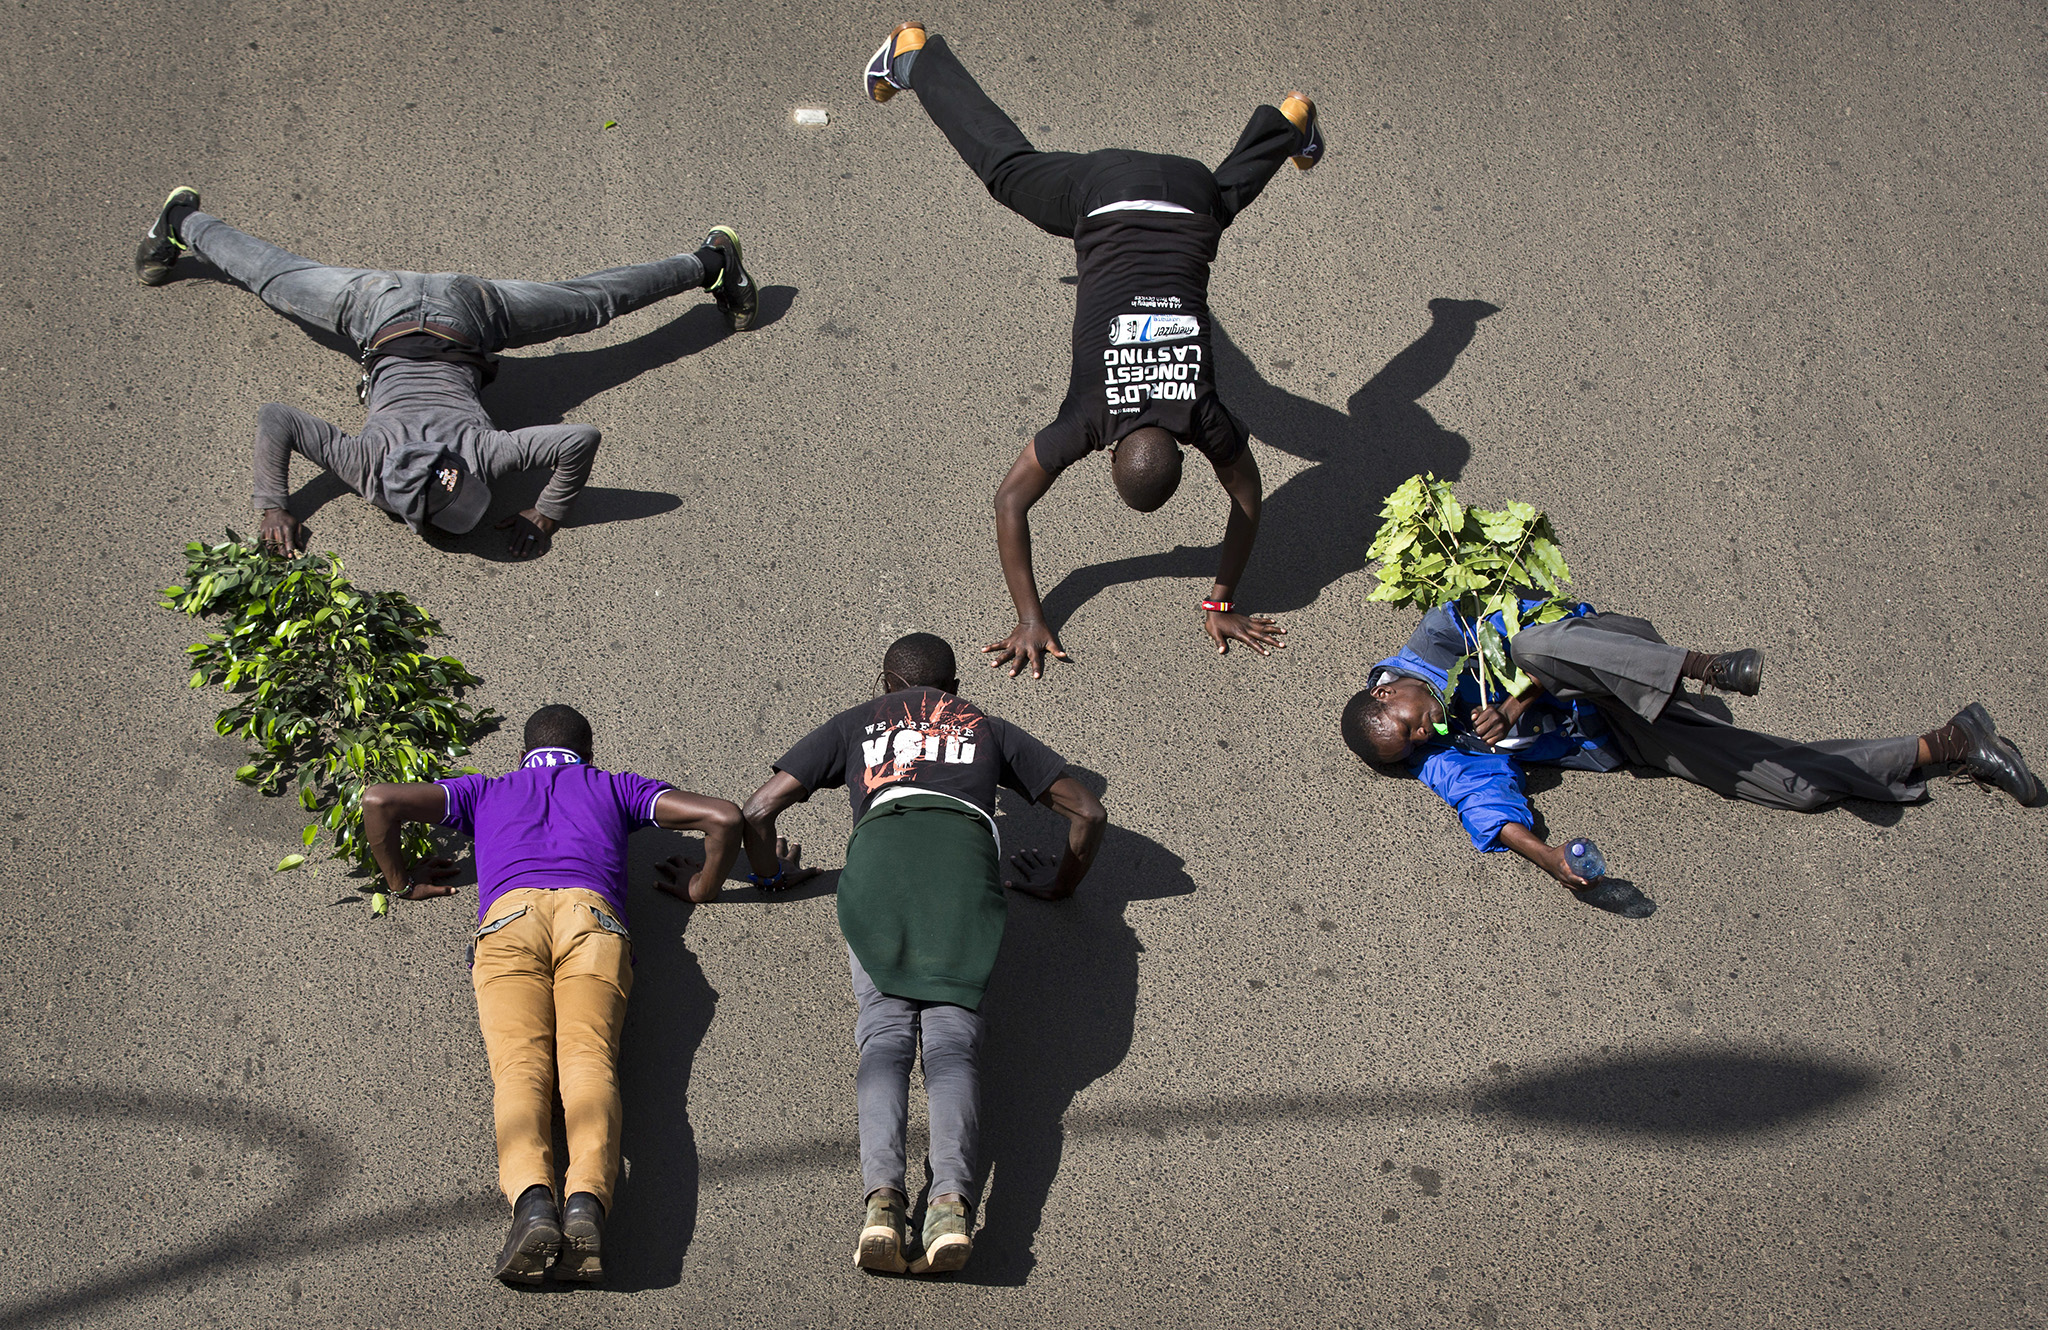 Demonstrators calling for the disbandment of the national electoral commission over allegations of bias and corruption, perform press-ups in the street as a sign of strength, in downtown Nairobi, Kenya Monday, June 6, 2016. While demonstrations led by opposition leaders in the capital were largely peaceful, police in Kisumu tear-gassed demonstrators who responded by throwing stones and witnesses say some people were killed by police.